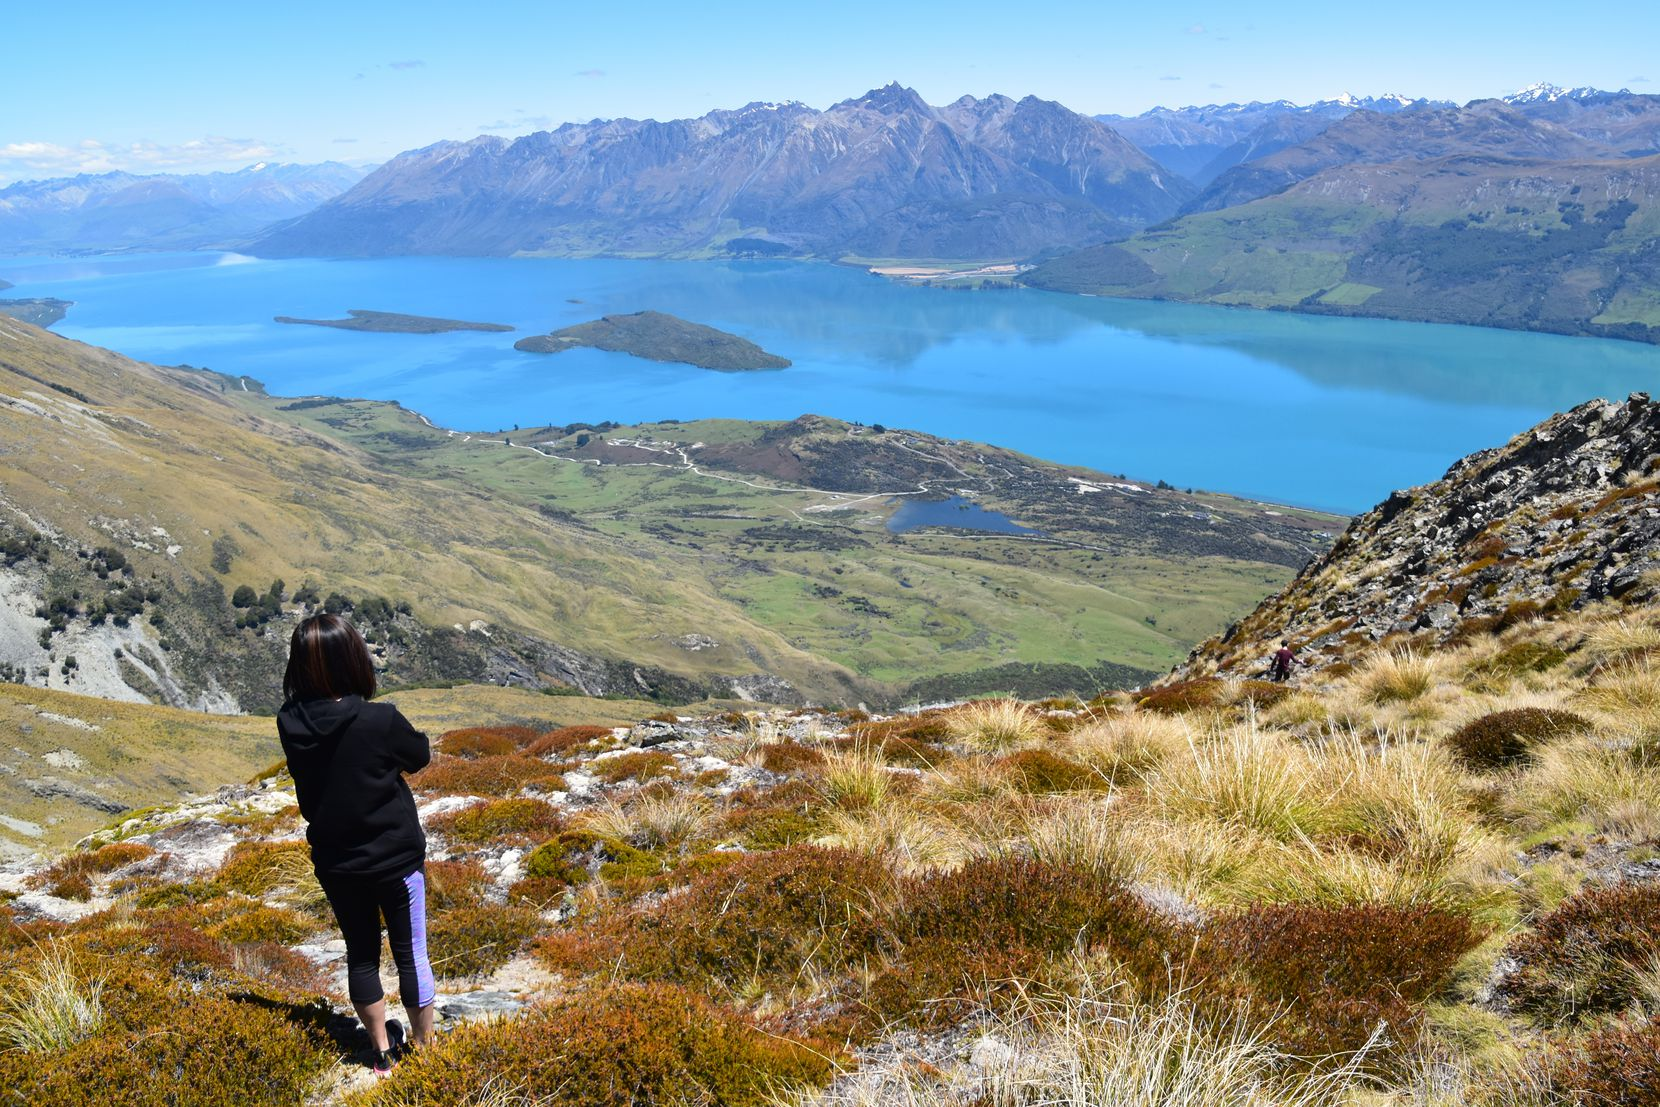 Lake Wakatipu, viewed from the top of Mount Judah near Glenorchy, owes its brilliant blue hue to glacial silt.